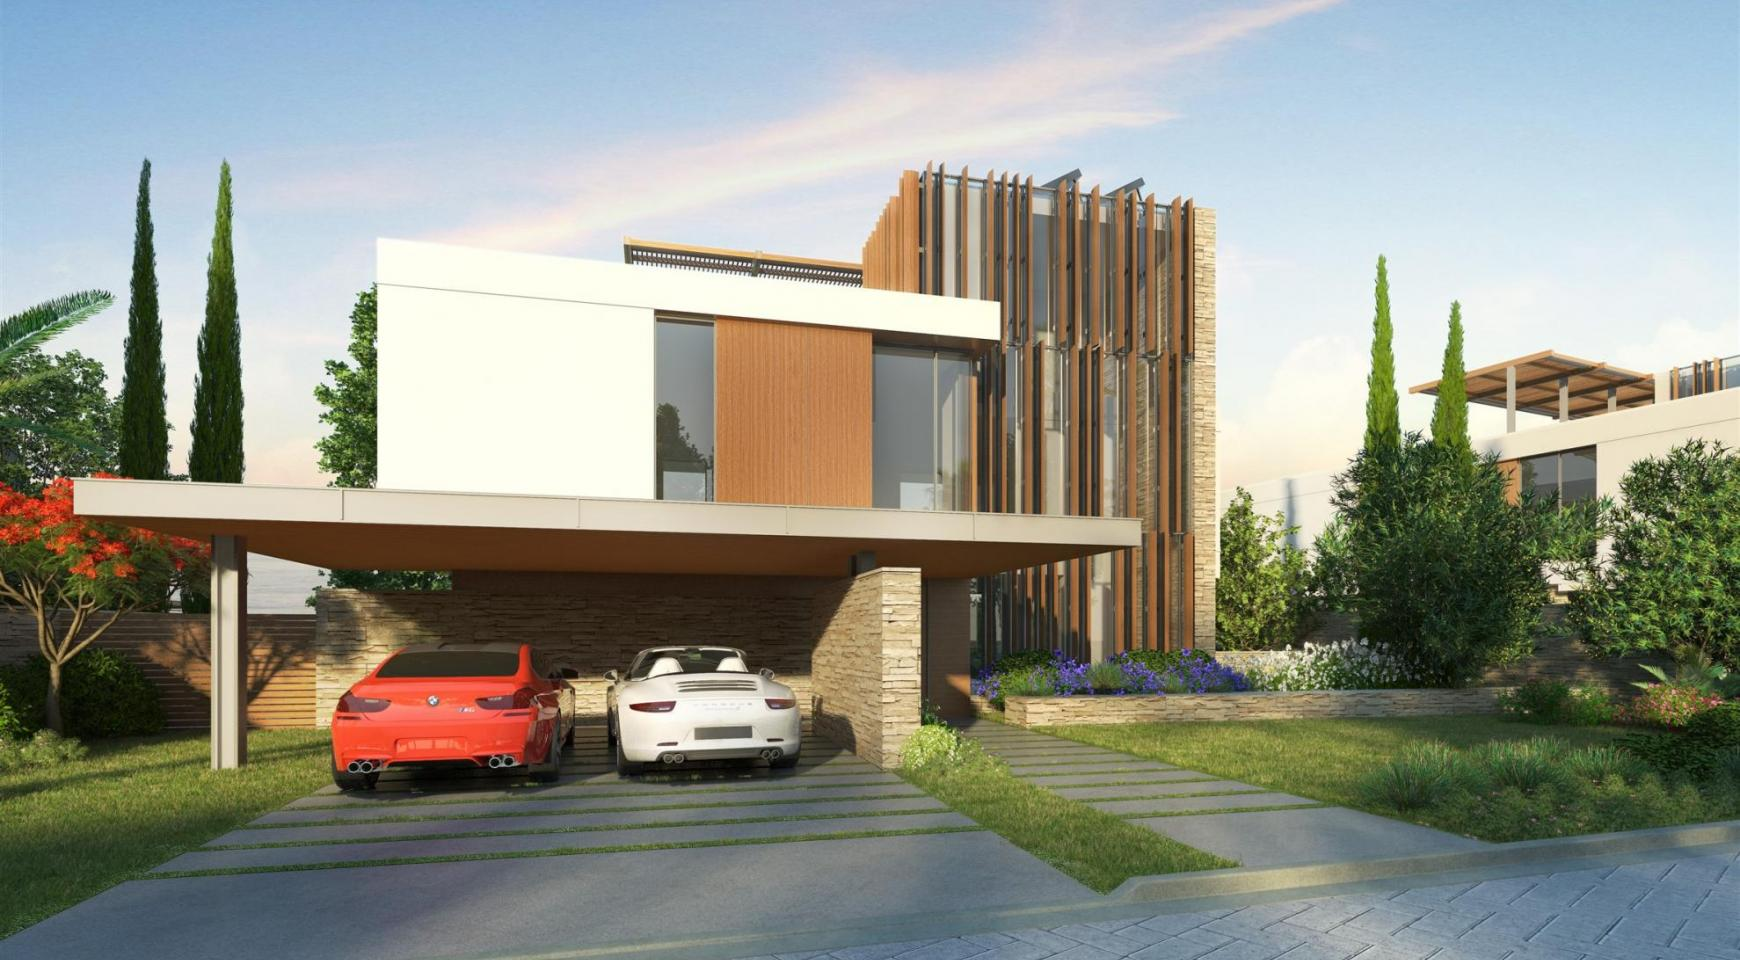 Stunning 3 Bedroom Villa in an Exclusive Project by the Sea - 7